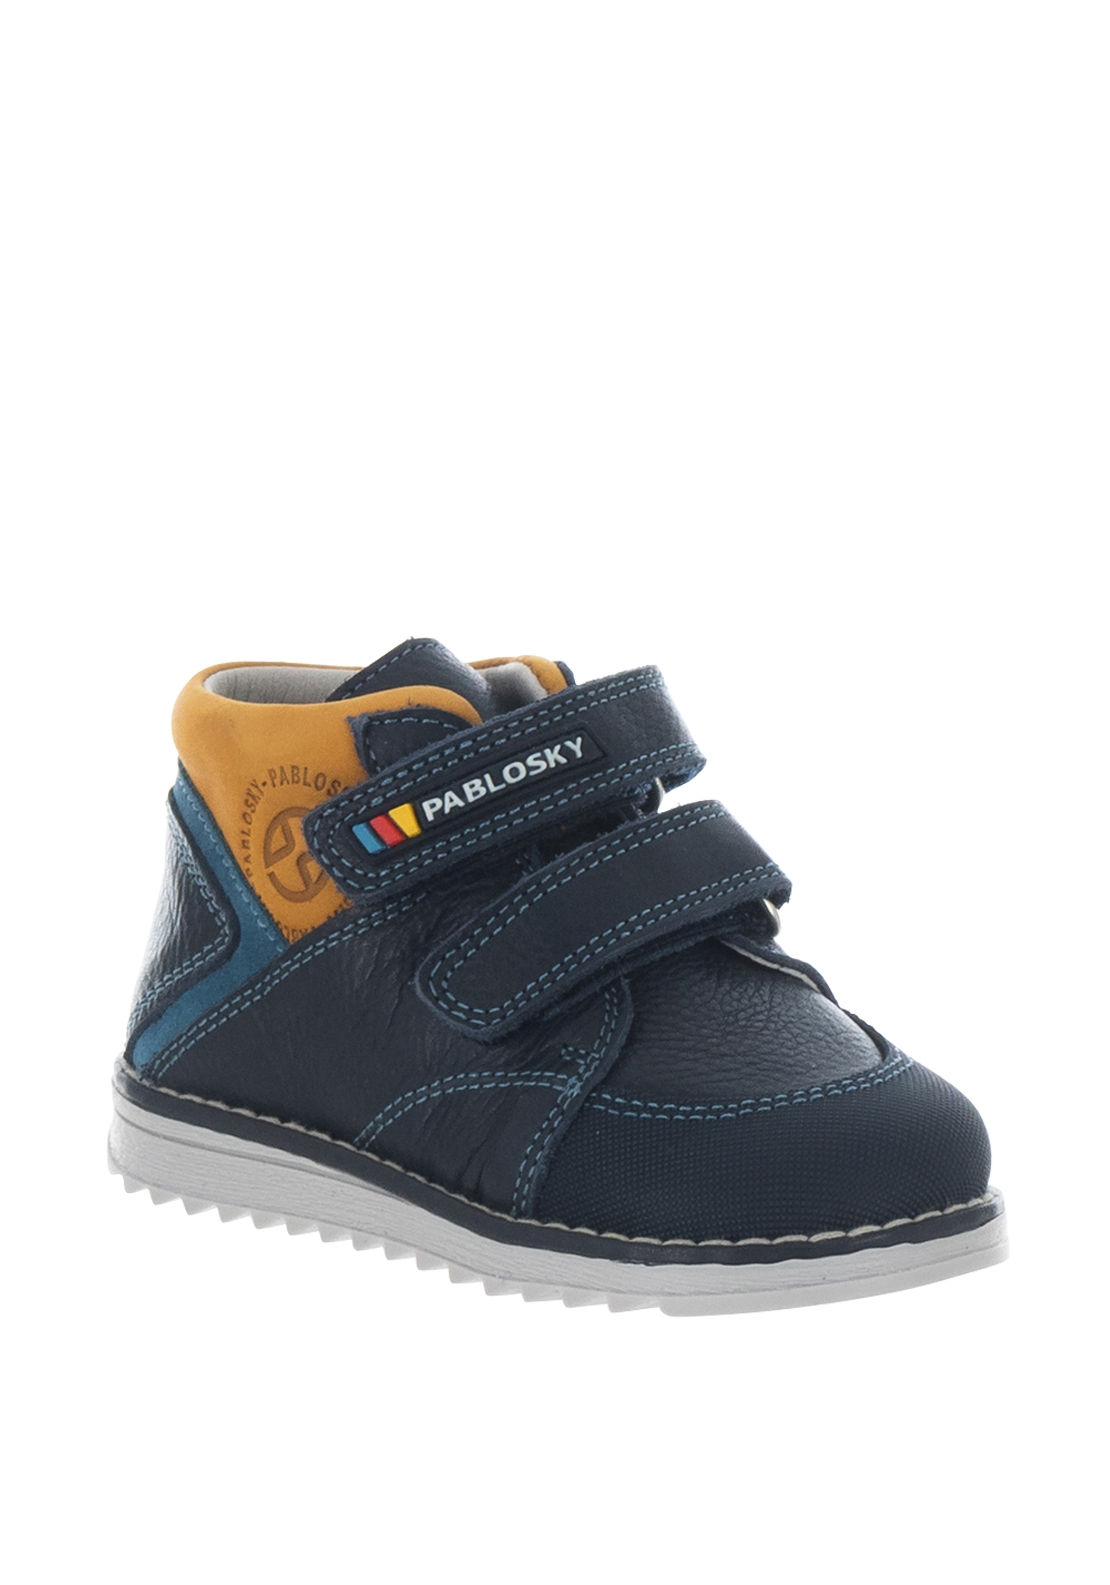 Pablosky Boys Yellow Cuff Velcro Strap Boots, Navy